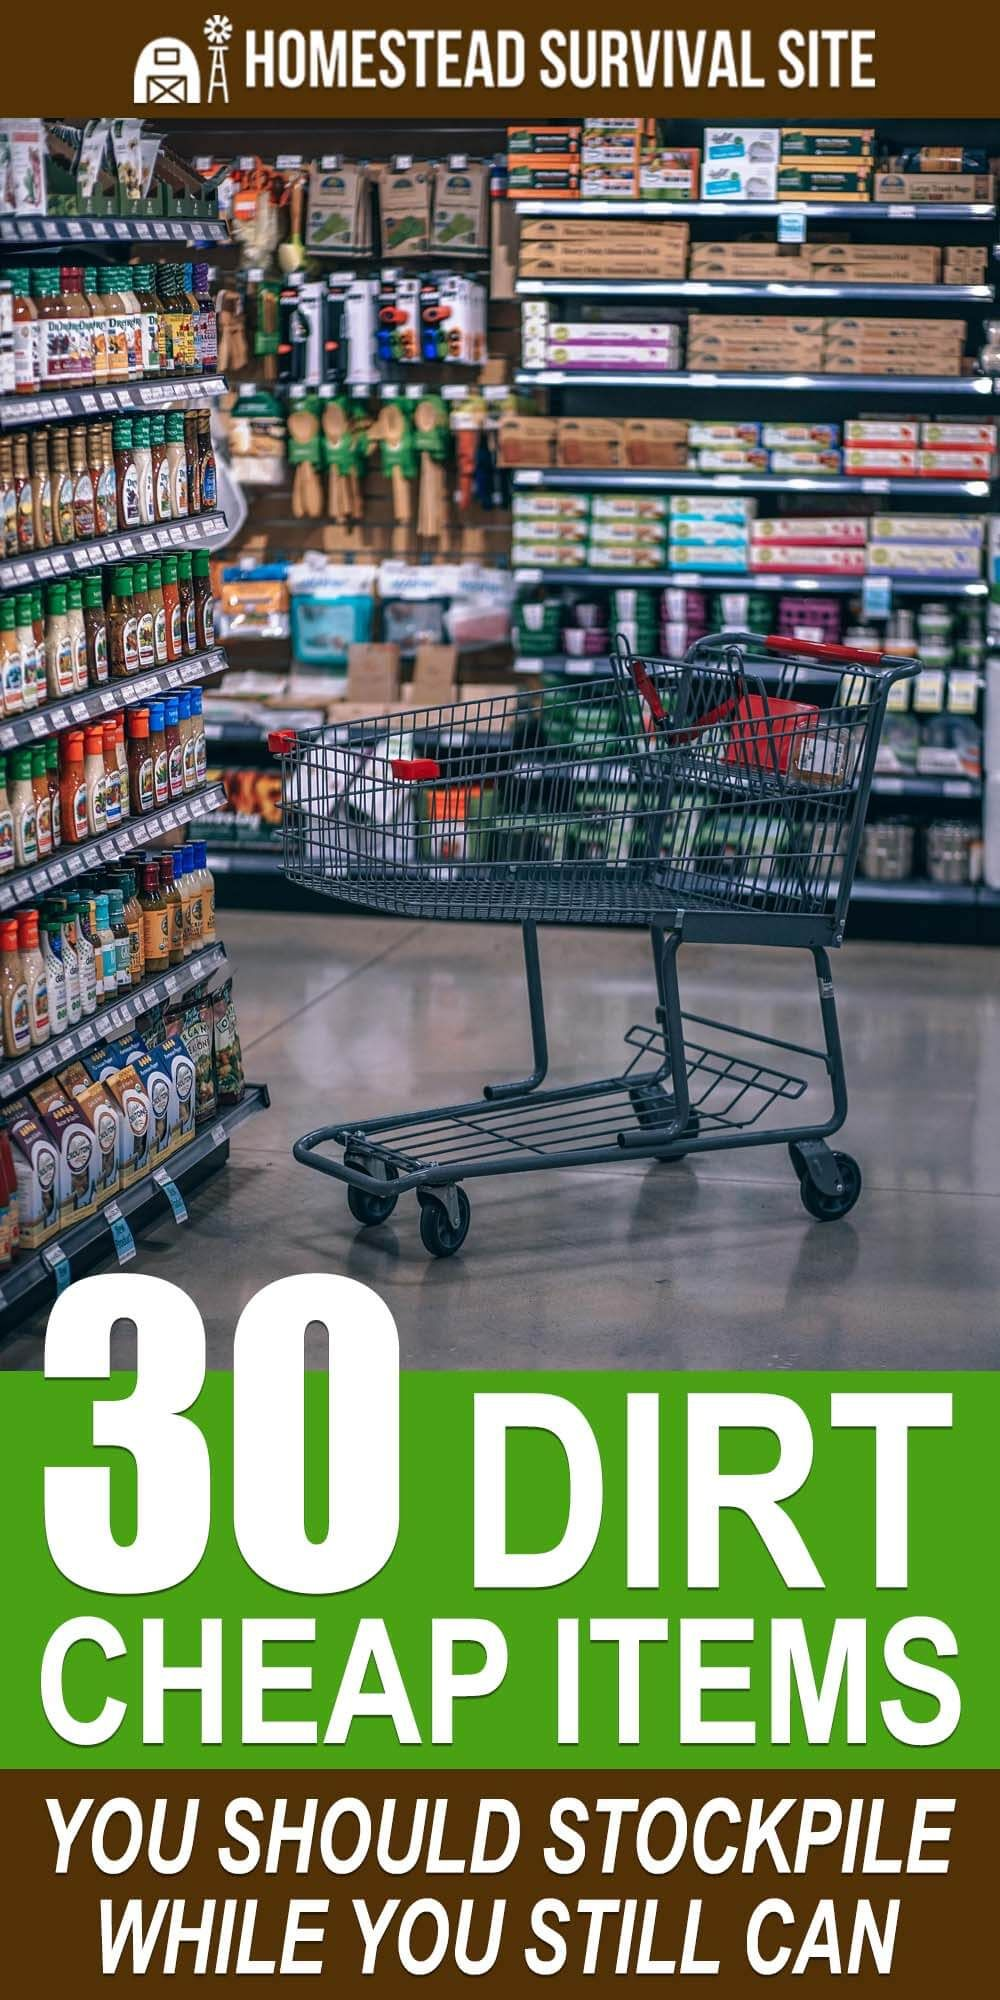 We took a tour of our local dollar store with a survival perspective in mind and found many dirt-cheap items that would not only serve more than one purpose in an emergency but would be valuable for bartering. #homesteadsurvivalsite #survivalitems #survivalsupplies #prepping #preparedness